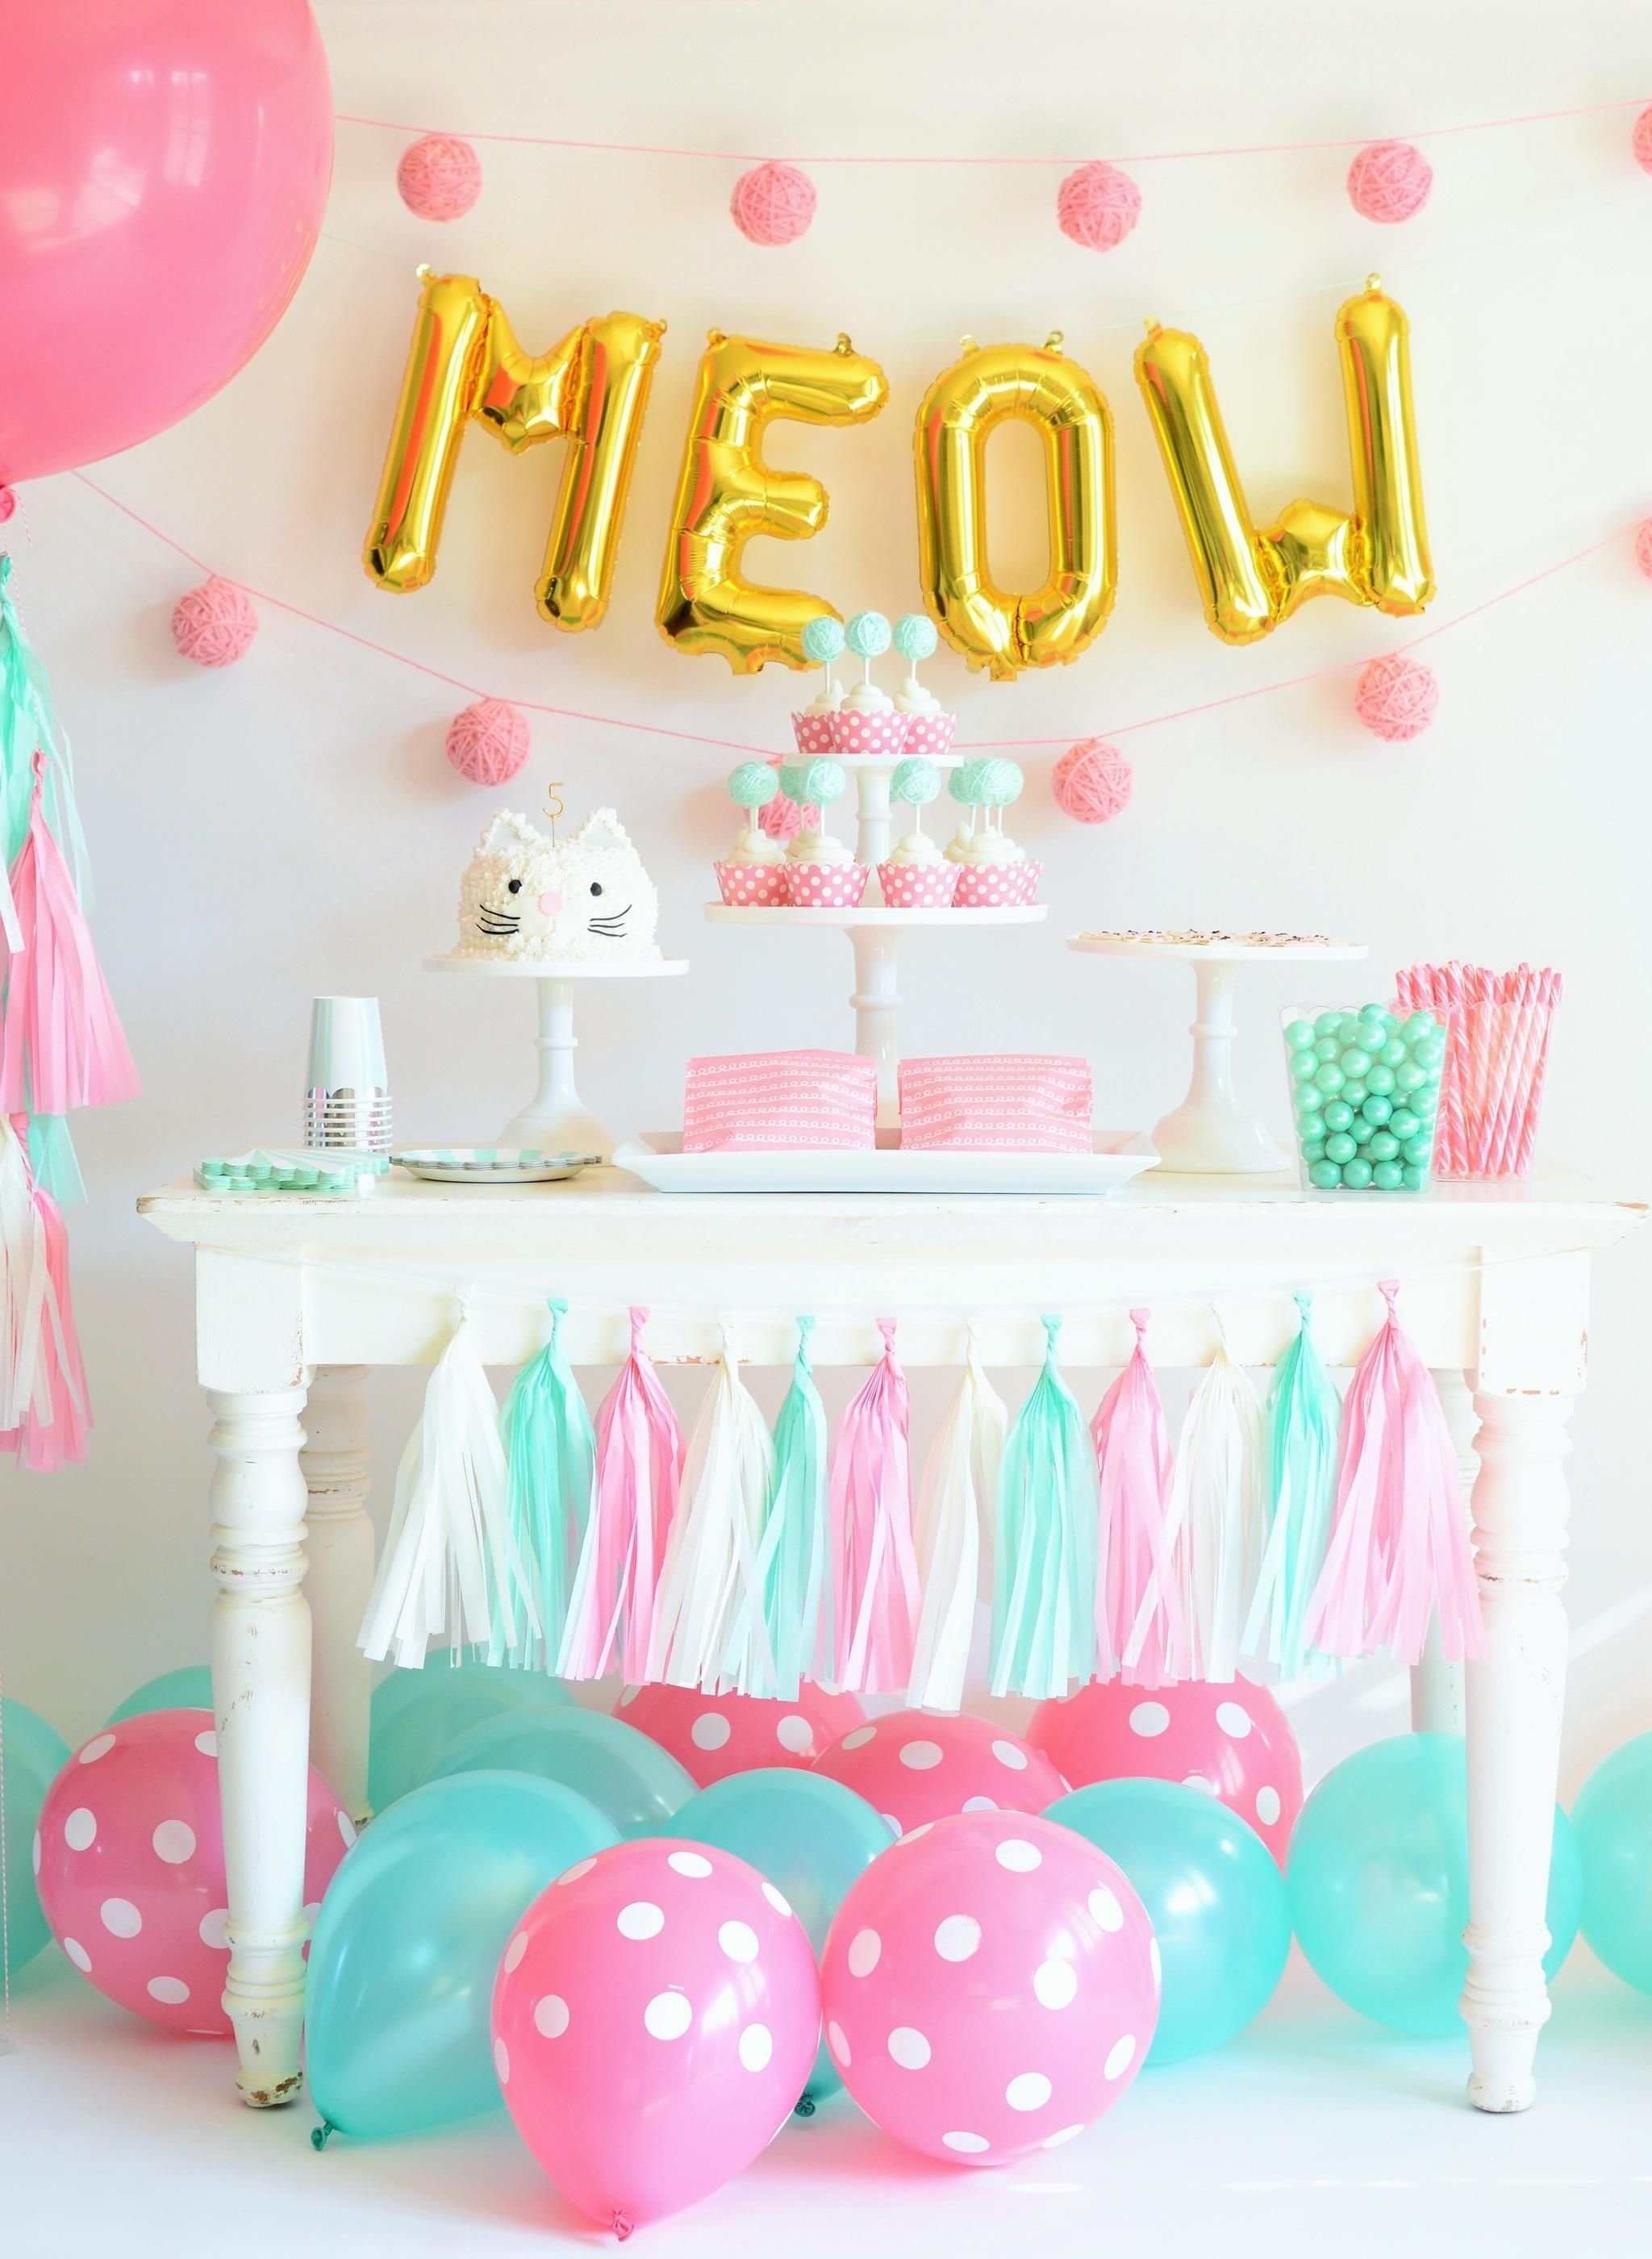 10 Spectacular Toddler Girl Birthday Party Ideas how to throw the purr fect kitten party birthday party themes 1 2020